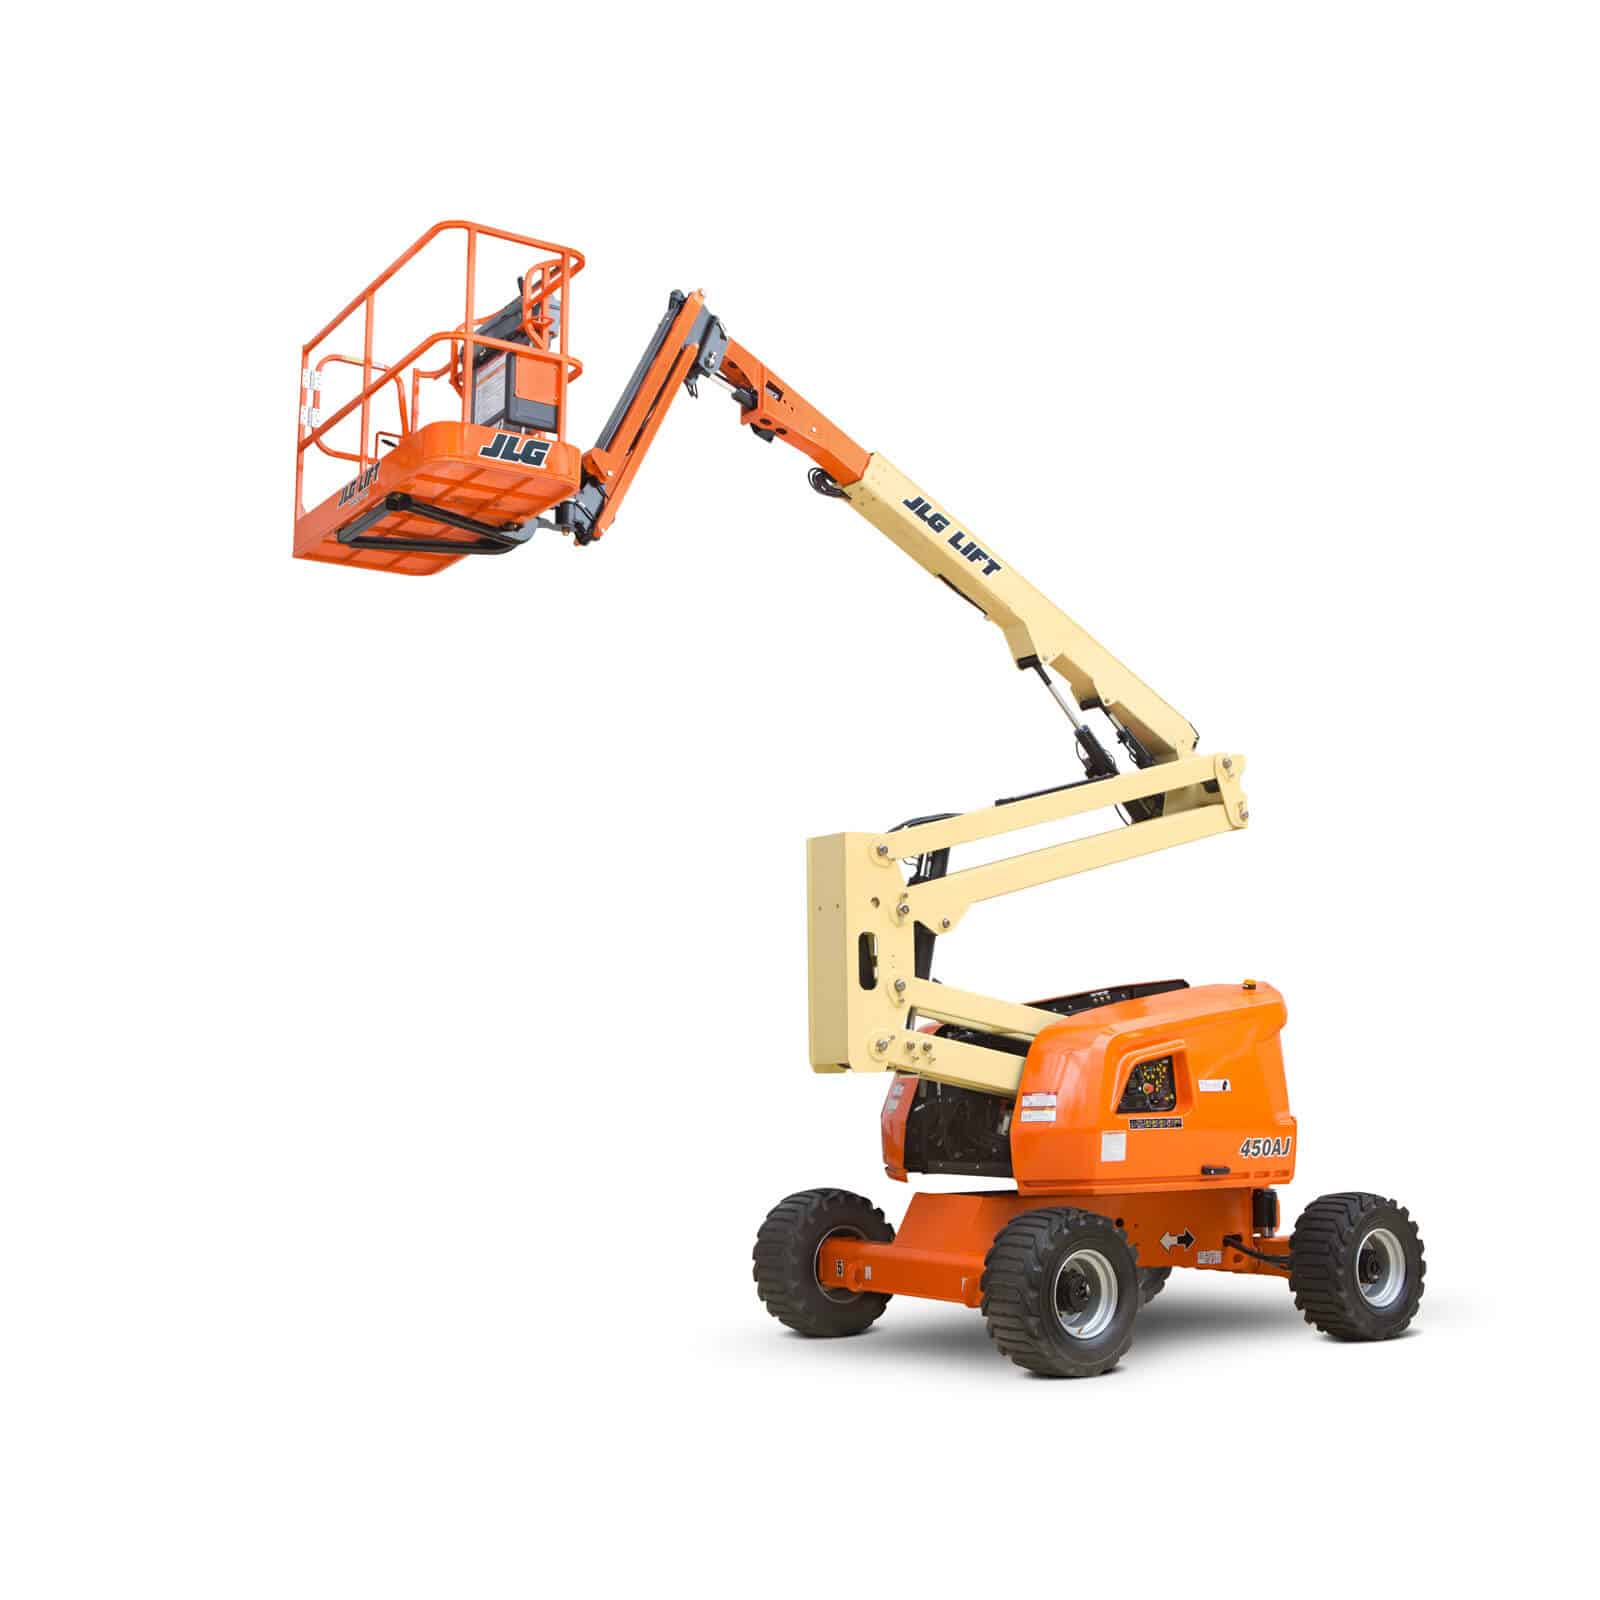 JLG 450AJ – 45FT Articulating Boom Lift